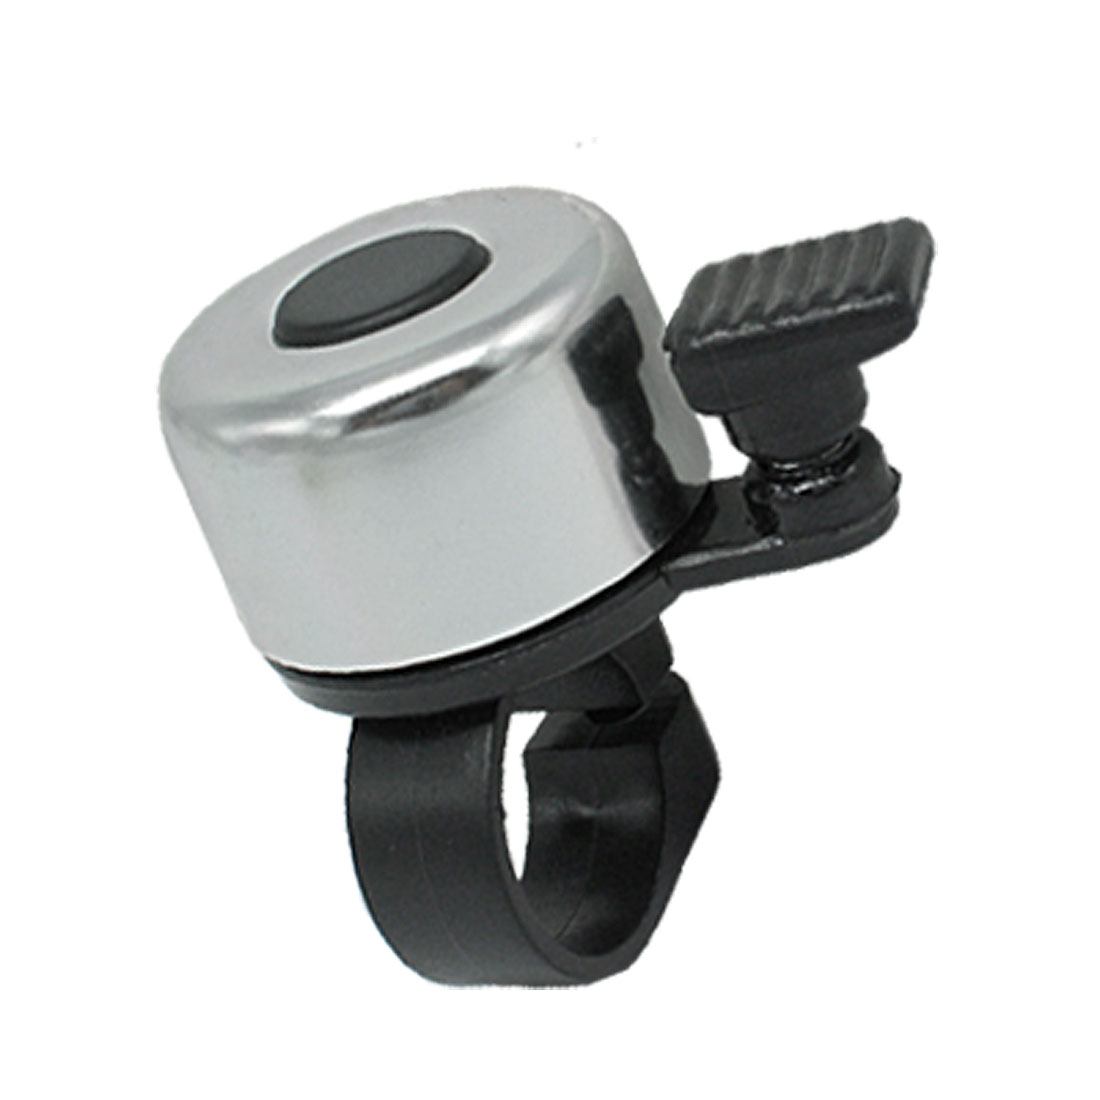 Silvery Black Columniform Bike Bicycle Bell